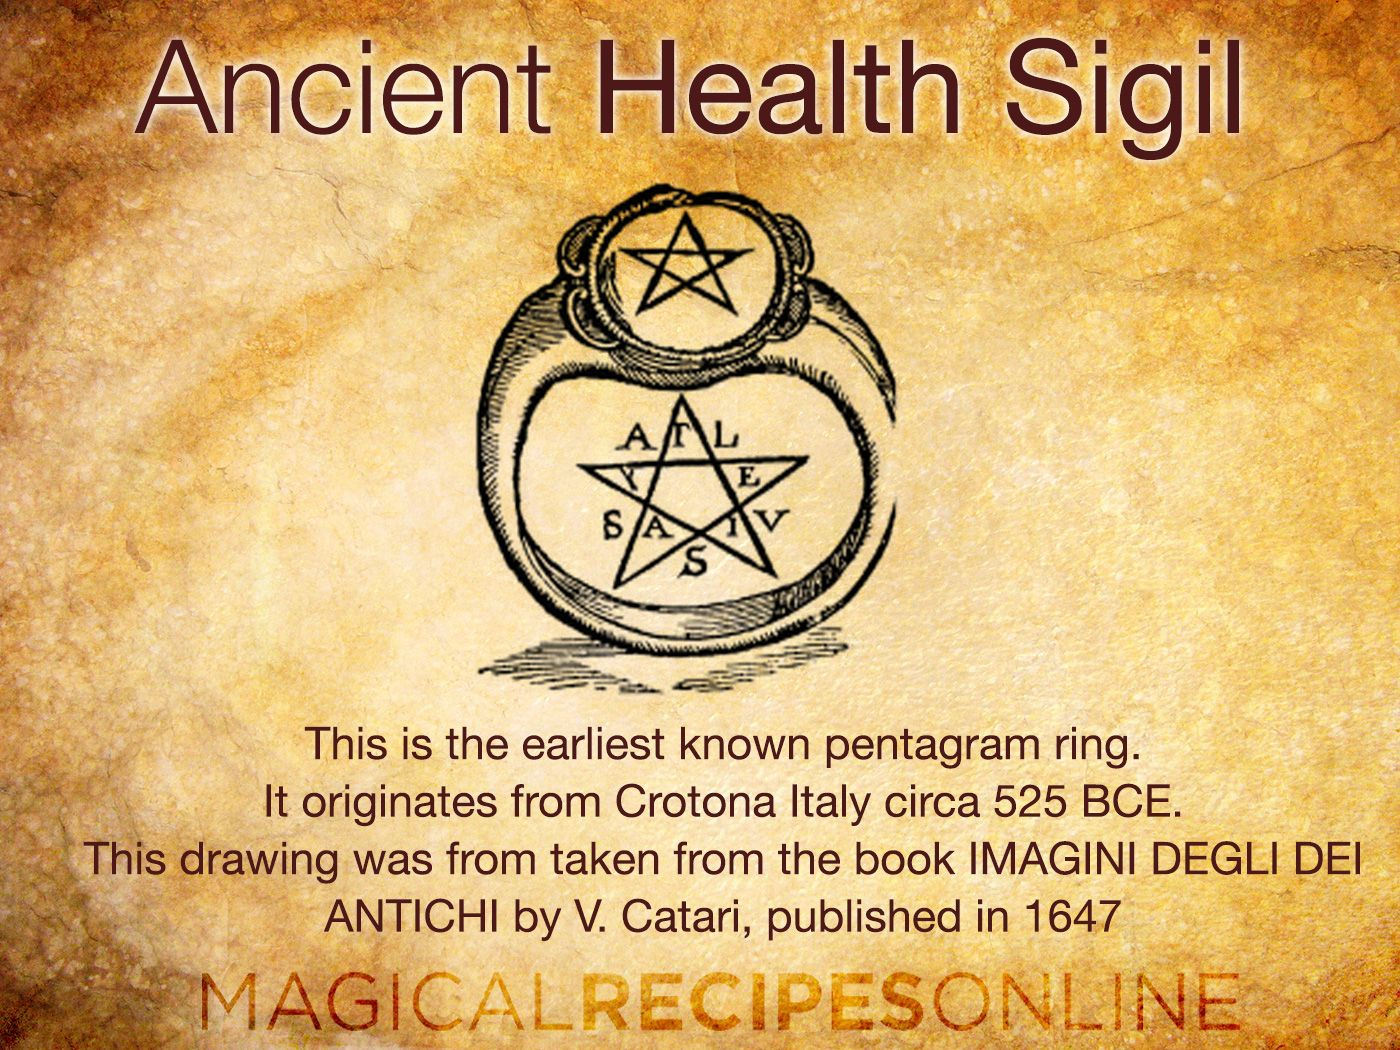 an ancient greek spell How to restore health and vigour